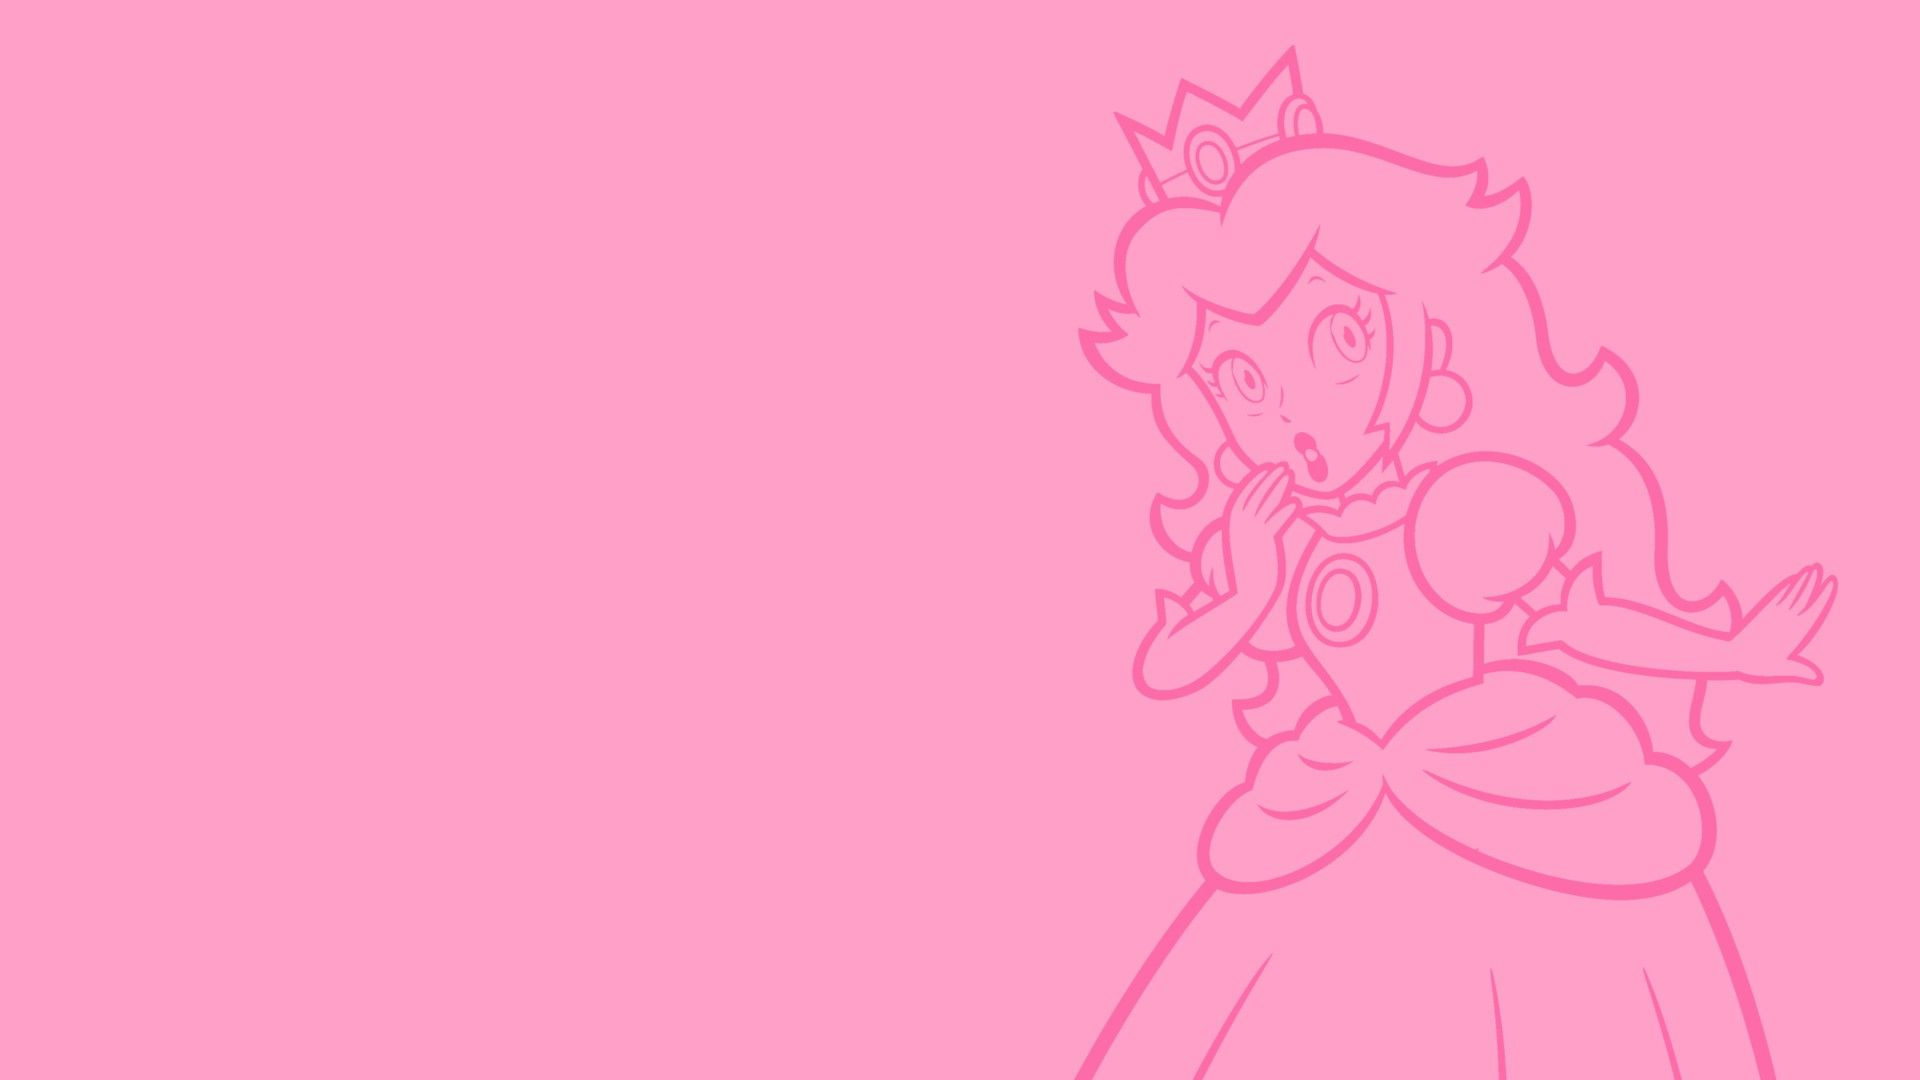 Download Hd Wallpapers Of 397095 Princess Peach Video Games Super Mario Nintendo Minimalism F Peach Wallpaper Iphone Background Wallpaper Peach Background